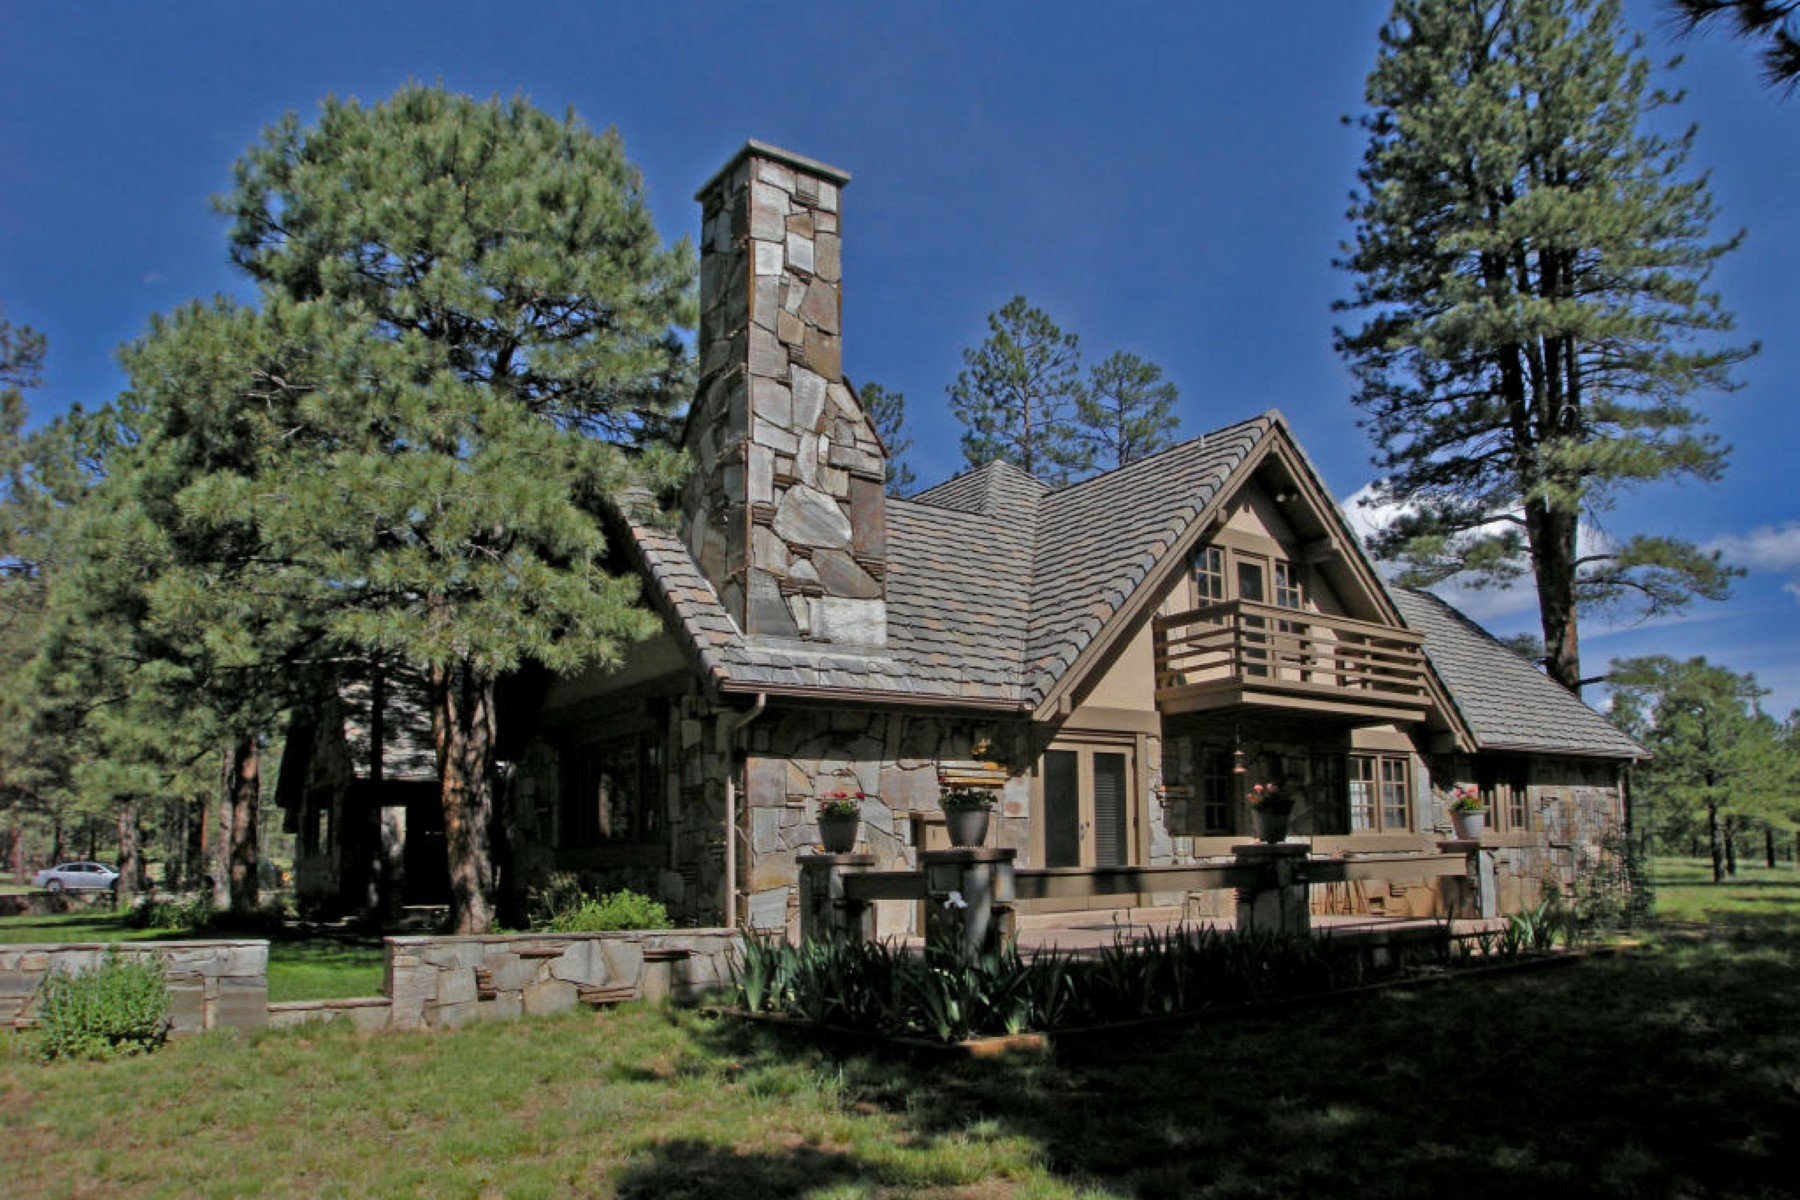 Maison unifamiliale pour l Vente à Extraordinary Land with an exceptional home situated on 26 acres. 4100 Hidden Hollow RD Flagstaff, Arizona, 86001 États-Unis